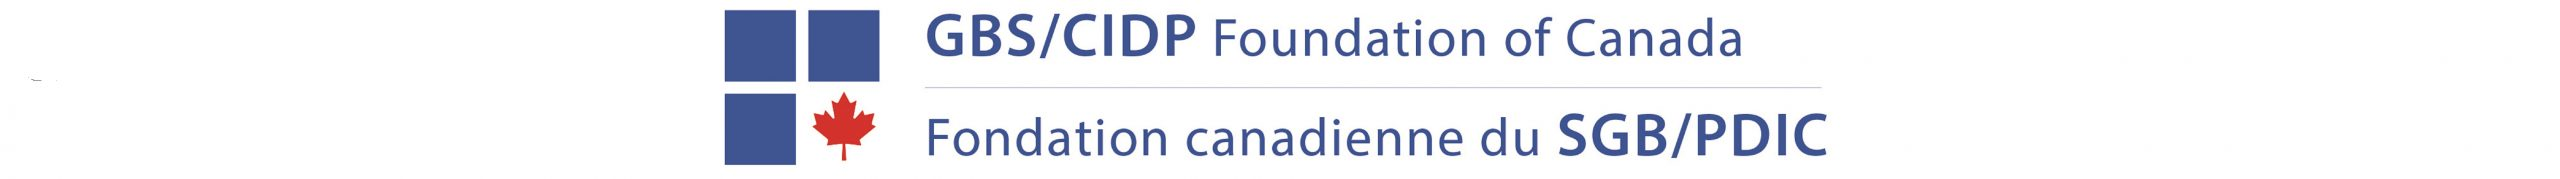 GBS/CIDP Foundation of Canada